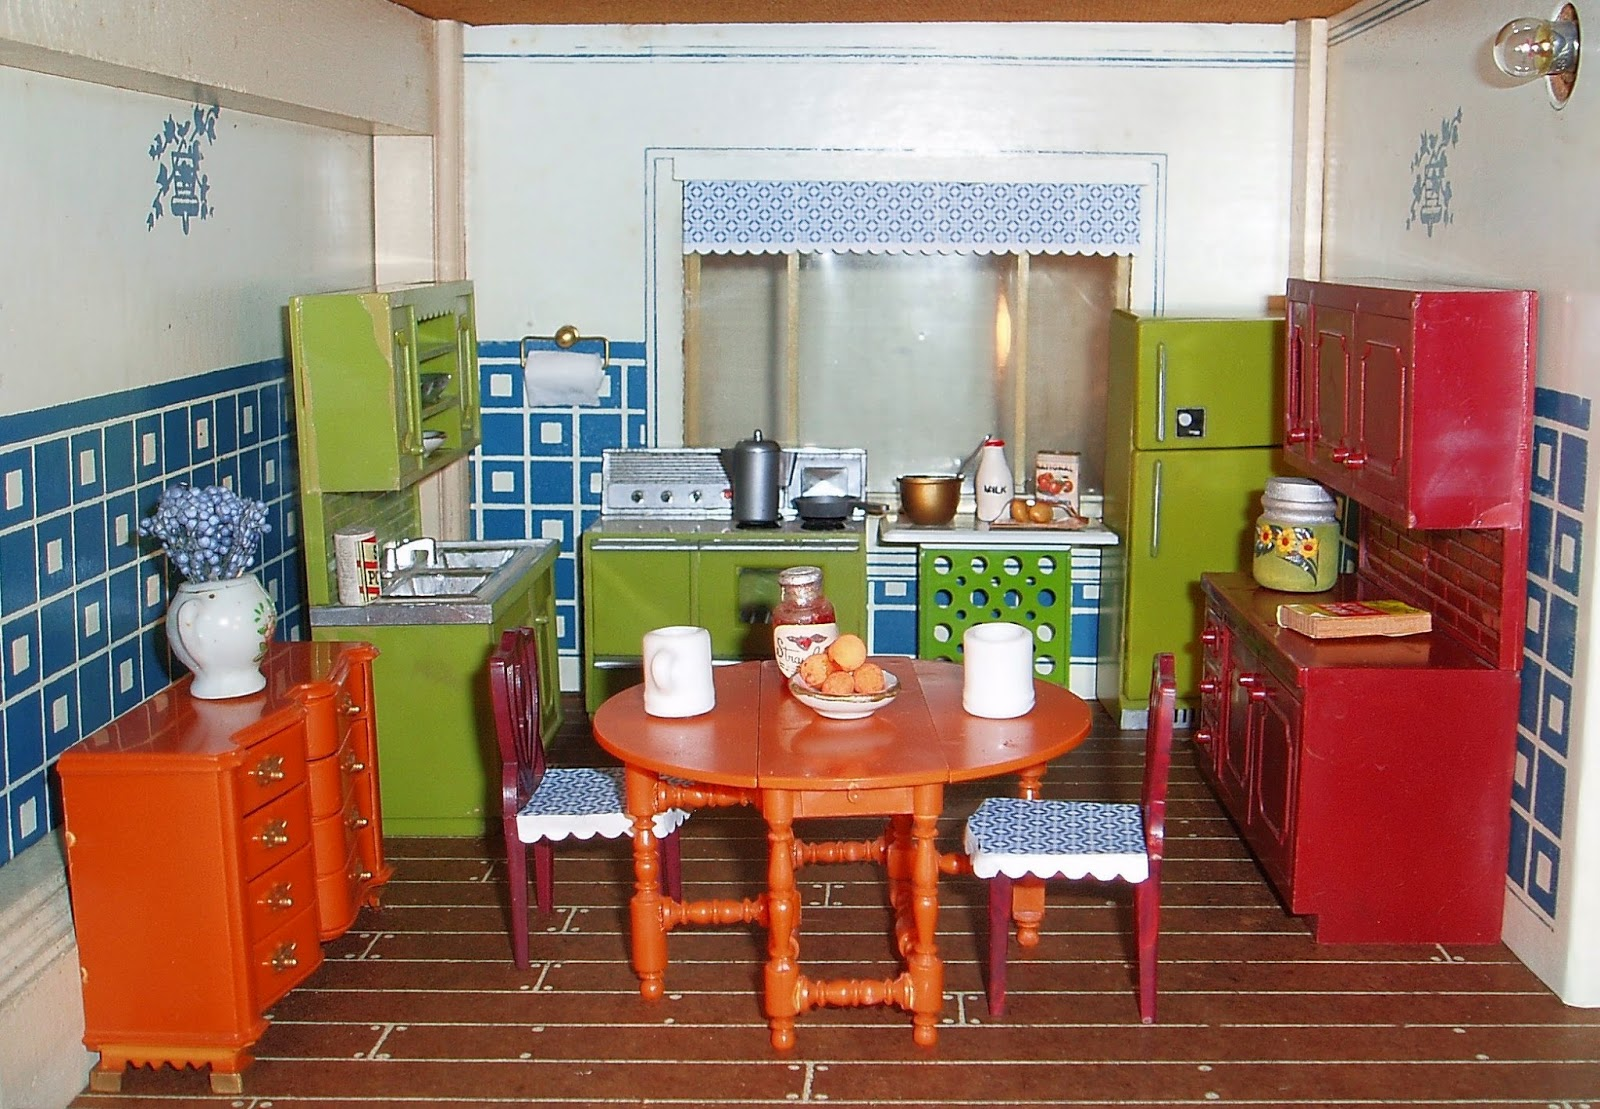 Dollhouse Kitchen Furniture My Vintage Dollhouses Miss Marx Little Hostess 1964 Meets Mr